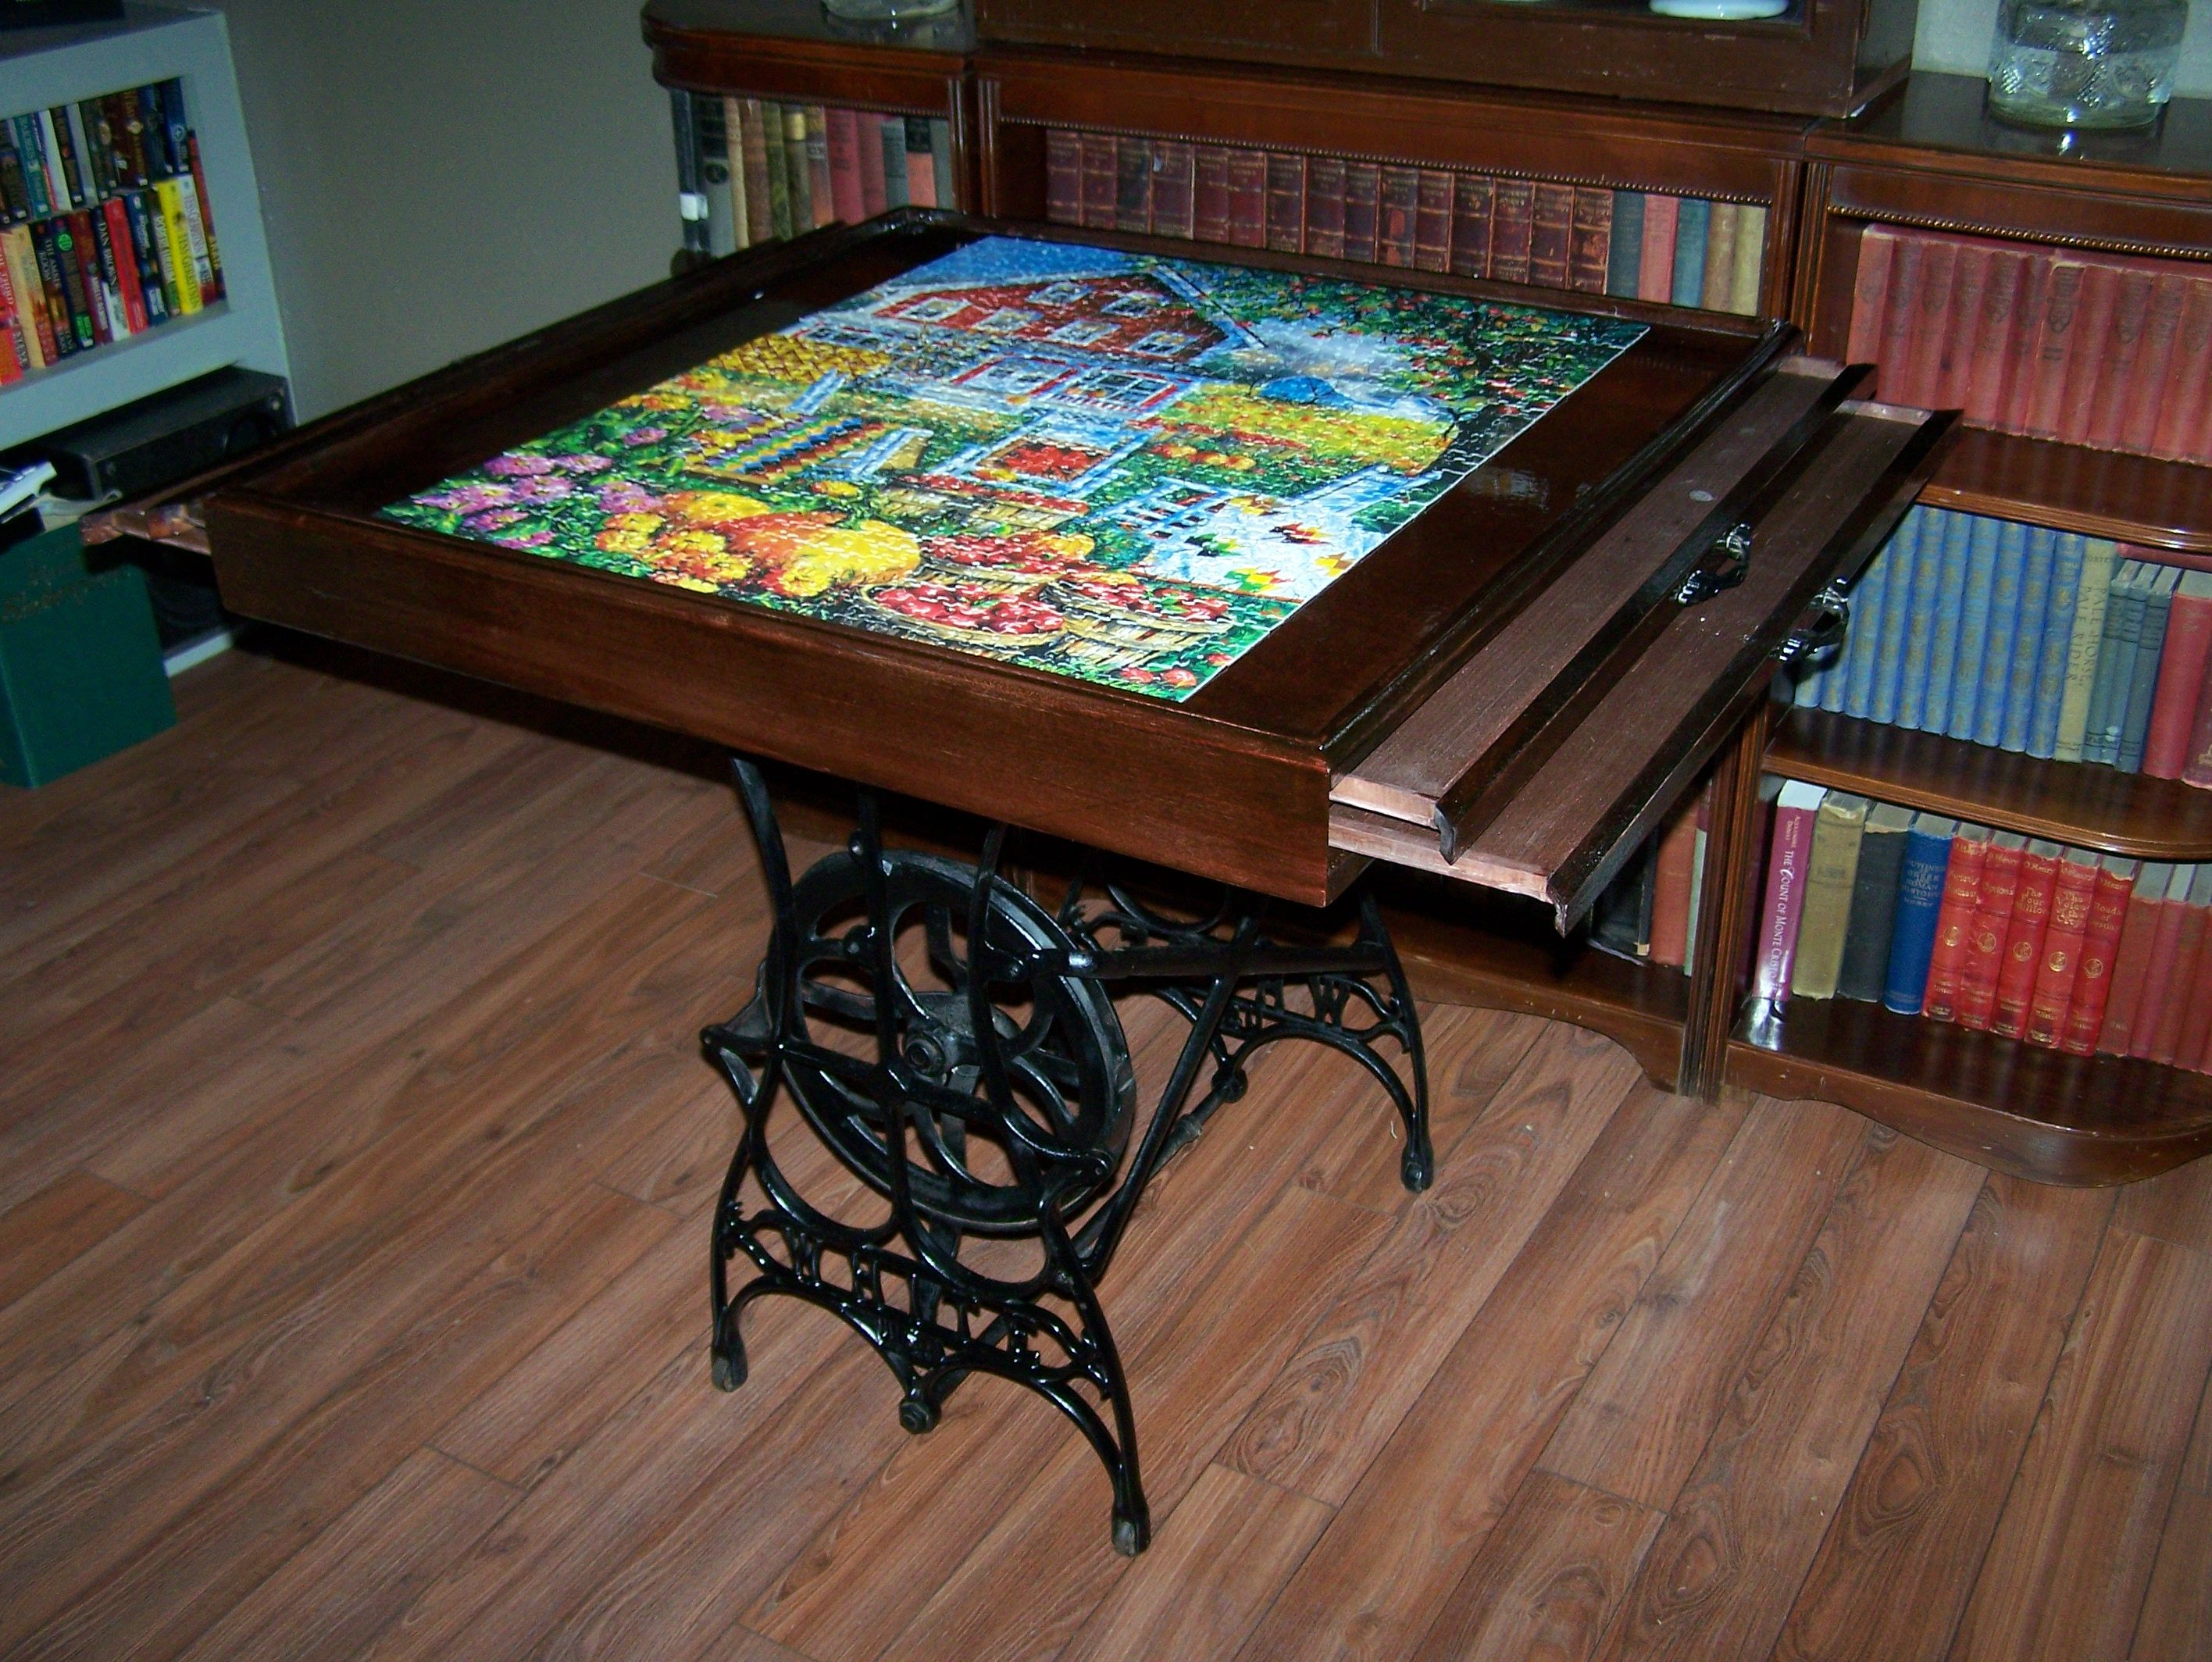 Amusing Puzzle Table And Chairs Pics Decoration